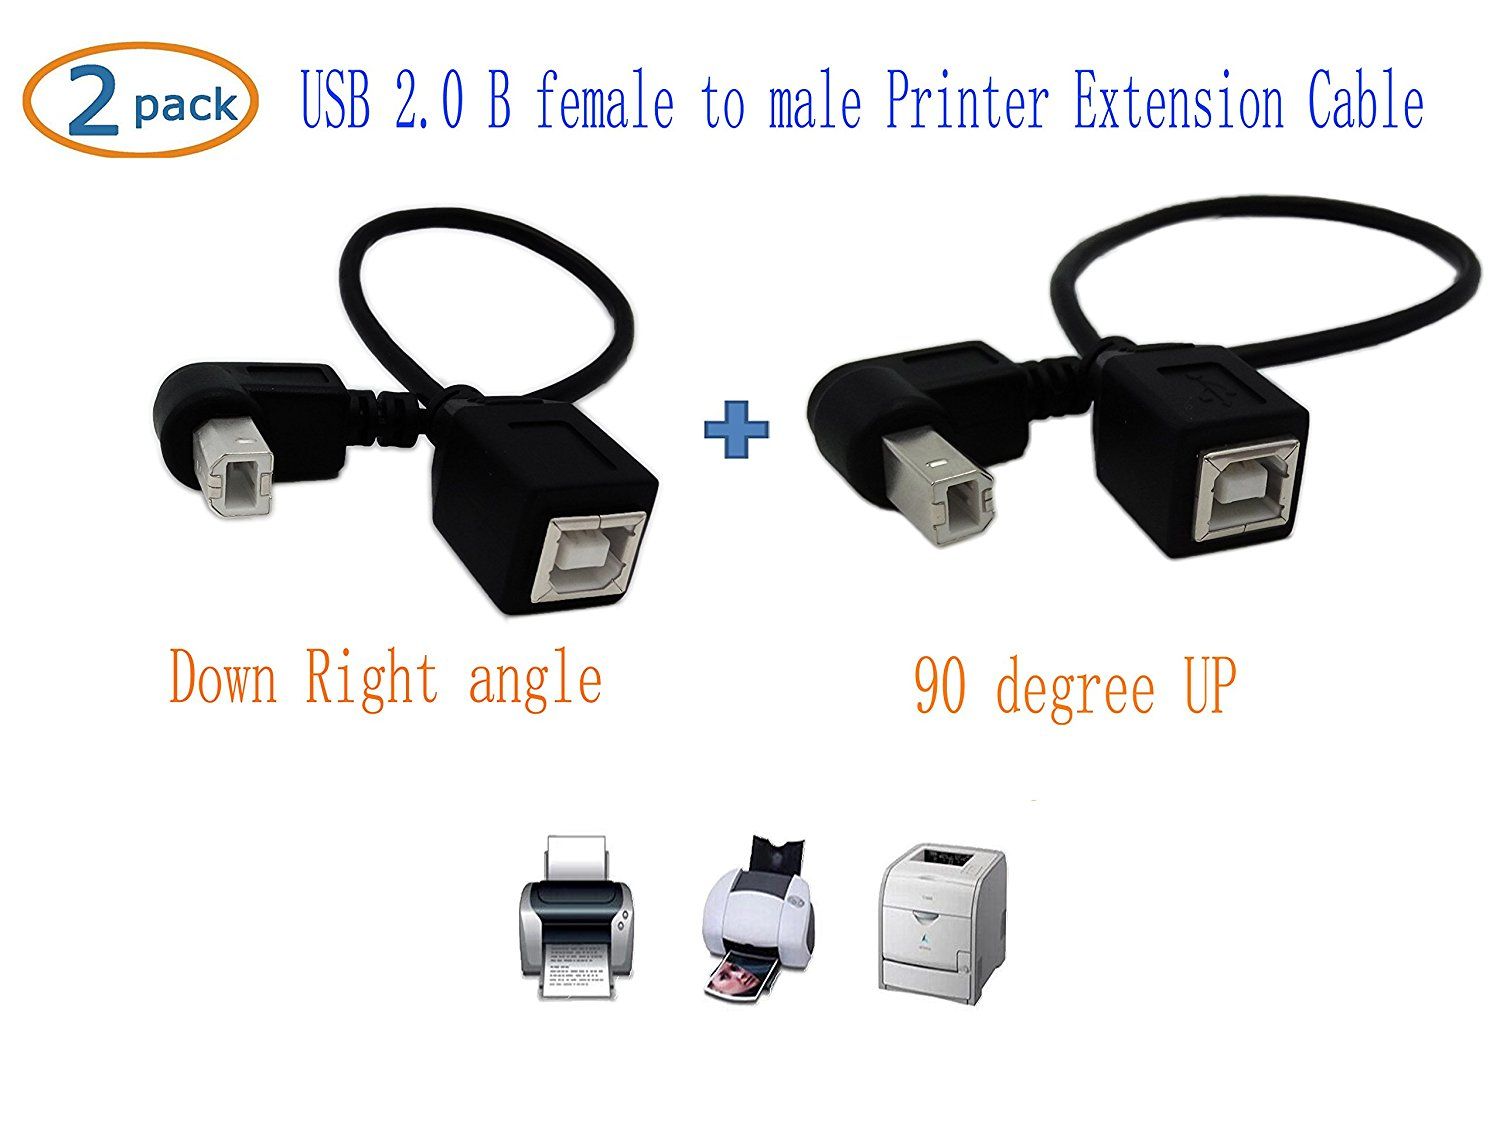 USB 2.0 Type-B Printer Cable,SinLoon(2-PACK) USB 2.0 B female to Type-B male (90 degree UP + Down Right angle) Printer short Extension Cable for Printer, Scanner, Mobile HDD and More (UP-DOWN)